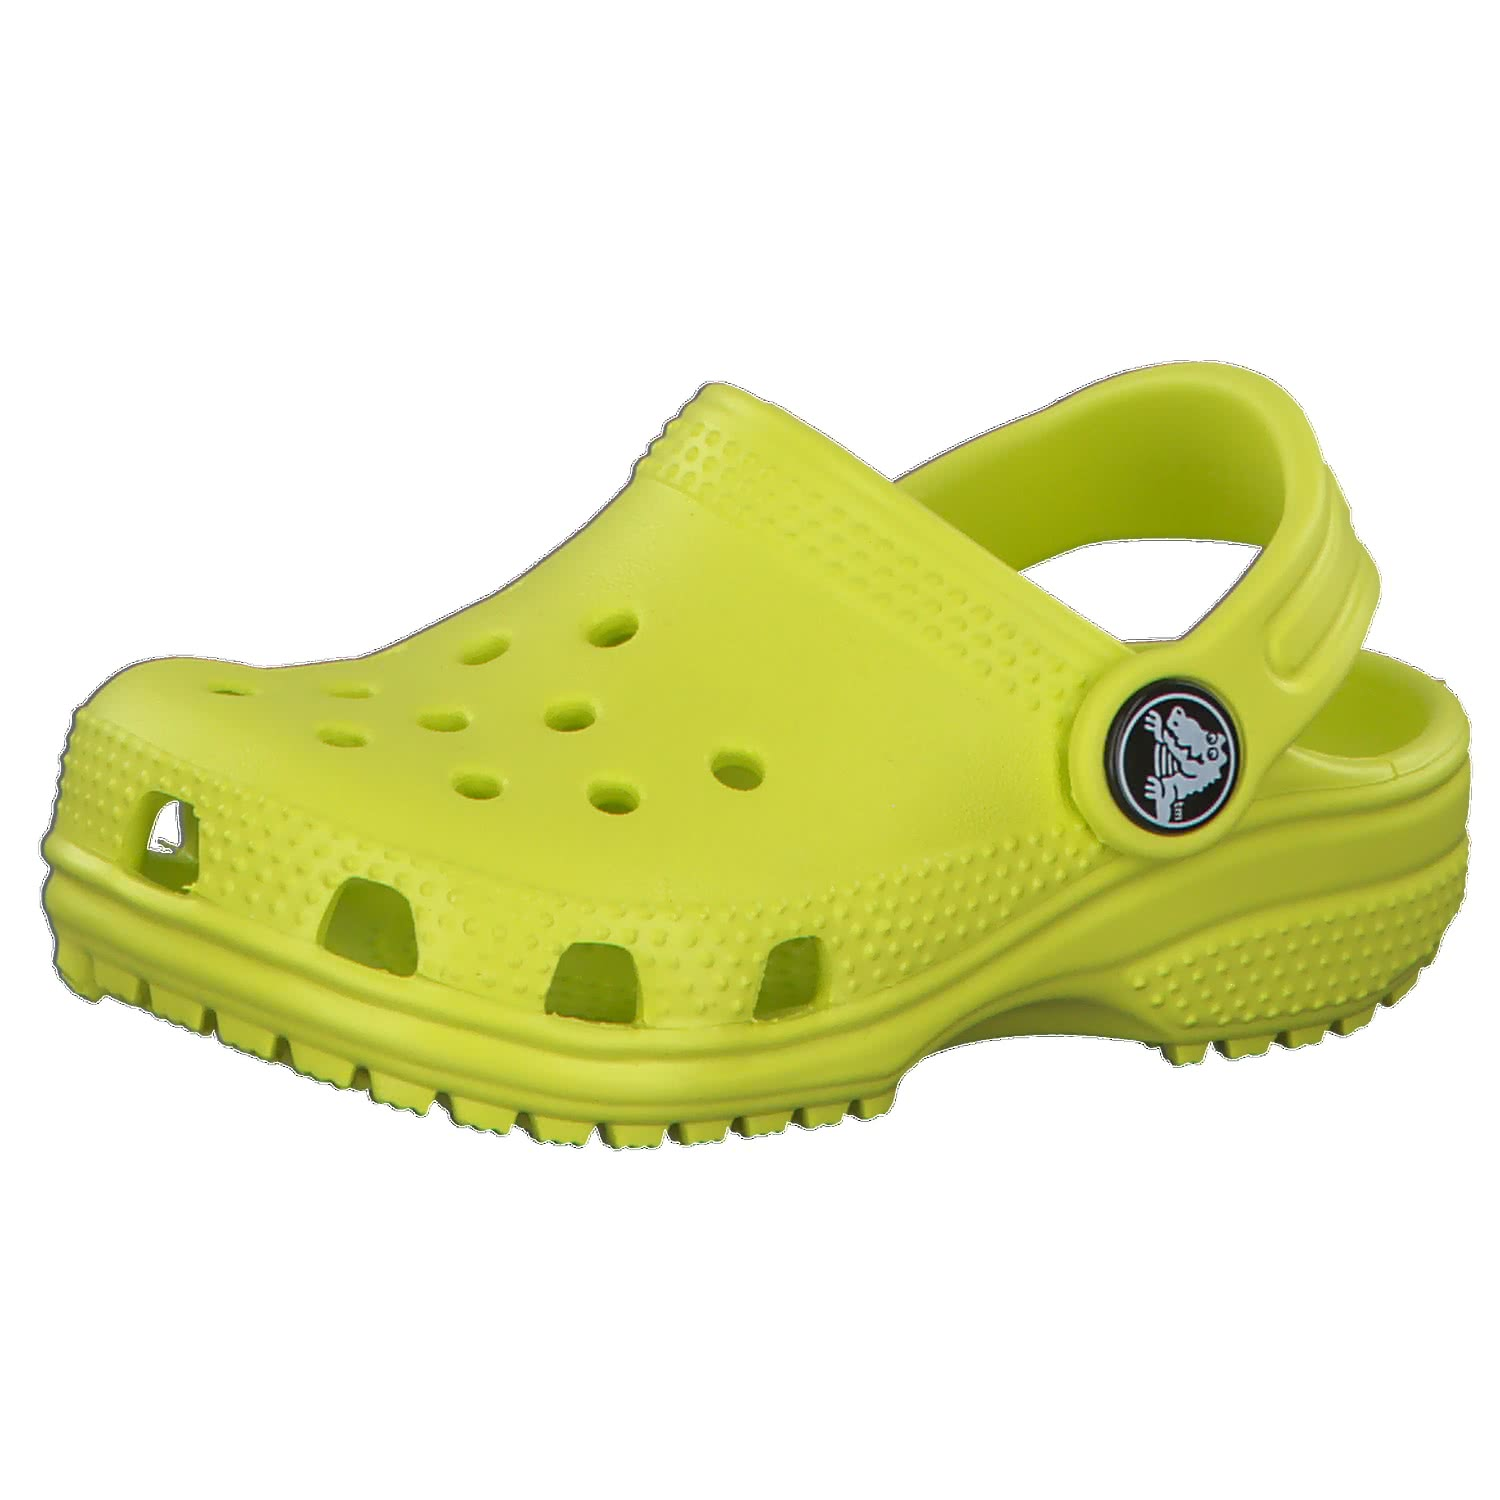 reputable site 95486 09655 Crocs Kinder Sandale Classic Clog 204536 | cortexpower.de